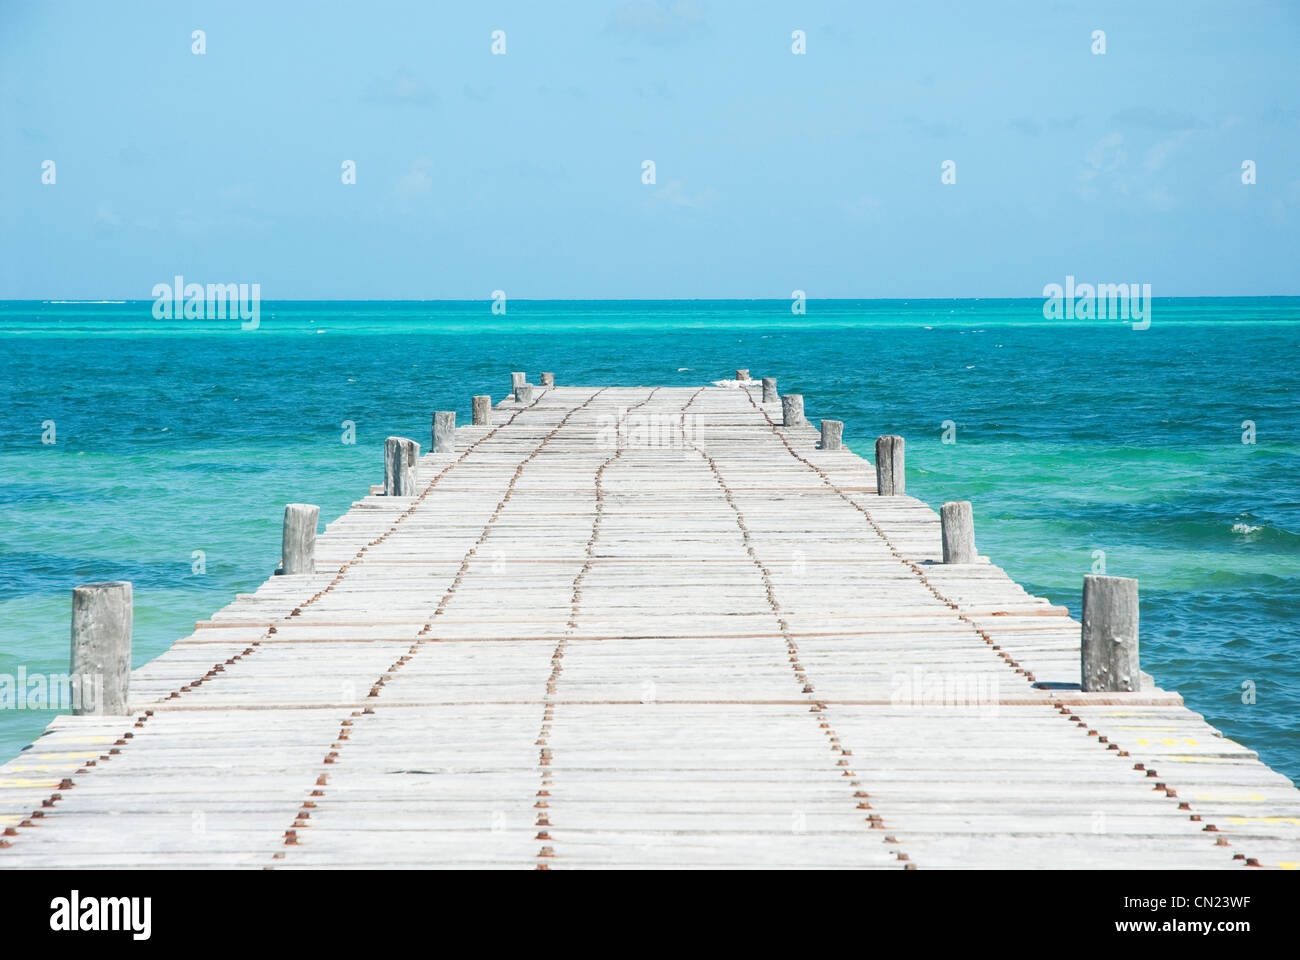 Jetty going out to sea, Tulum, Mexico - Stock Image